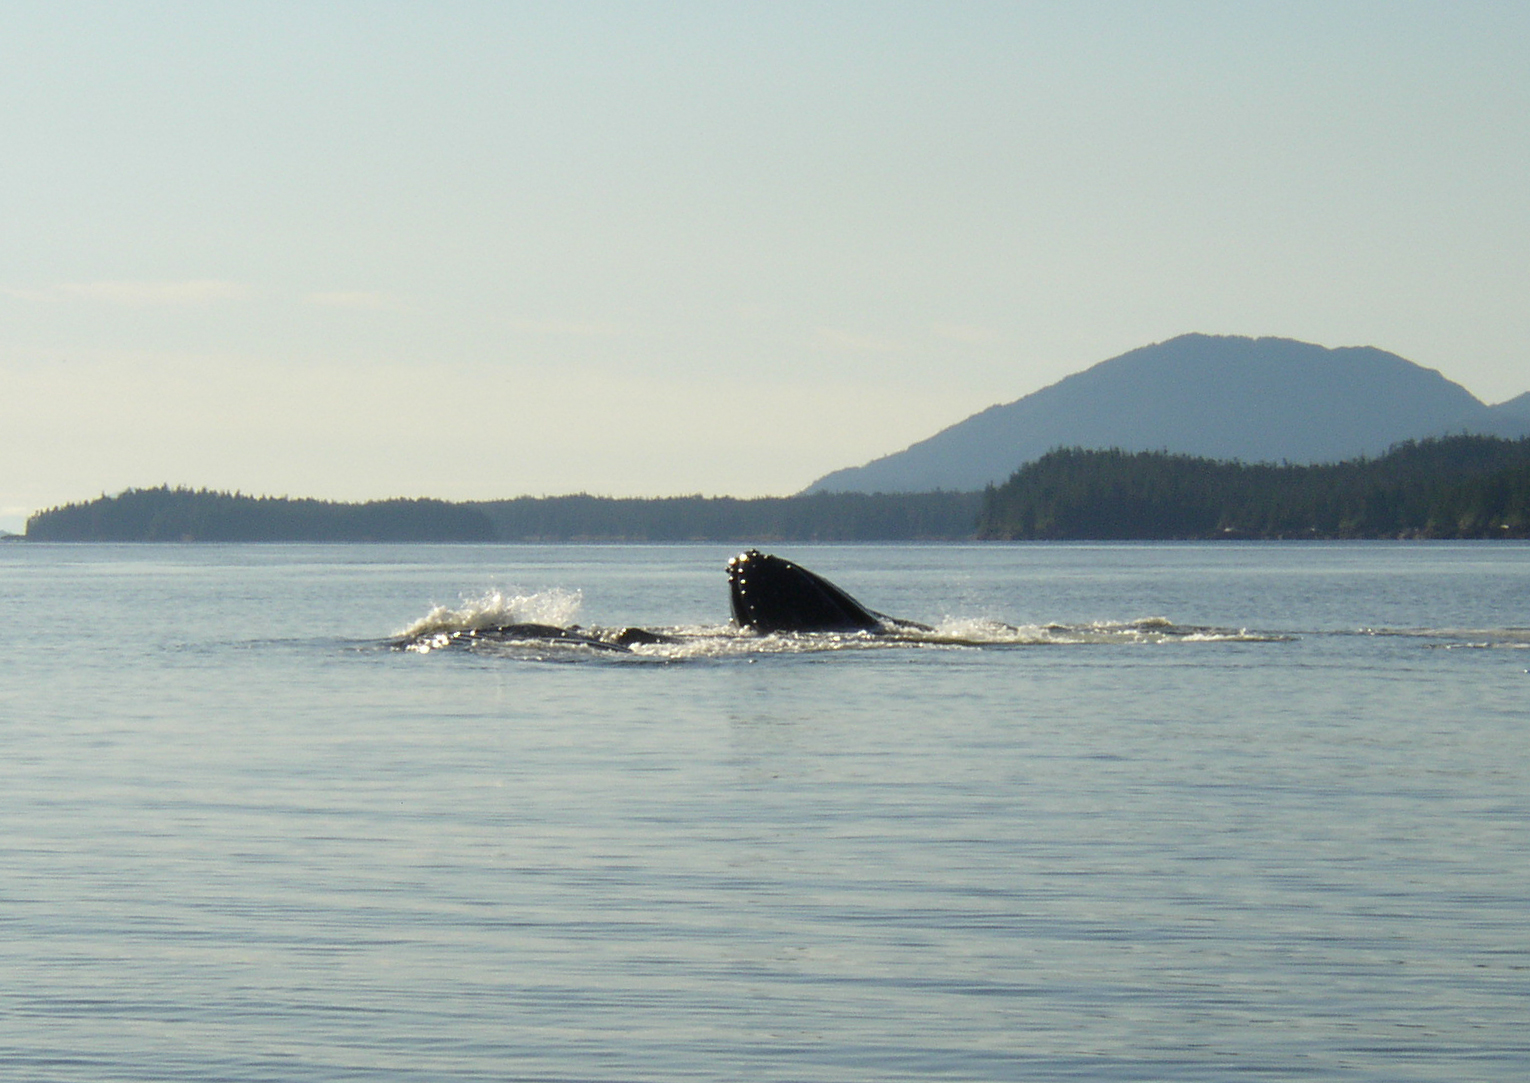 Humpback whale lunge feeding in Nichols Passage.